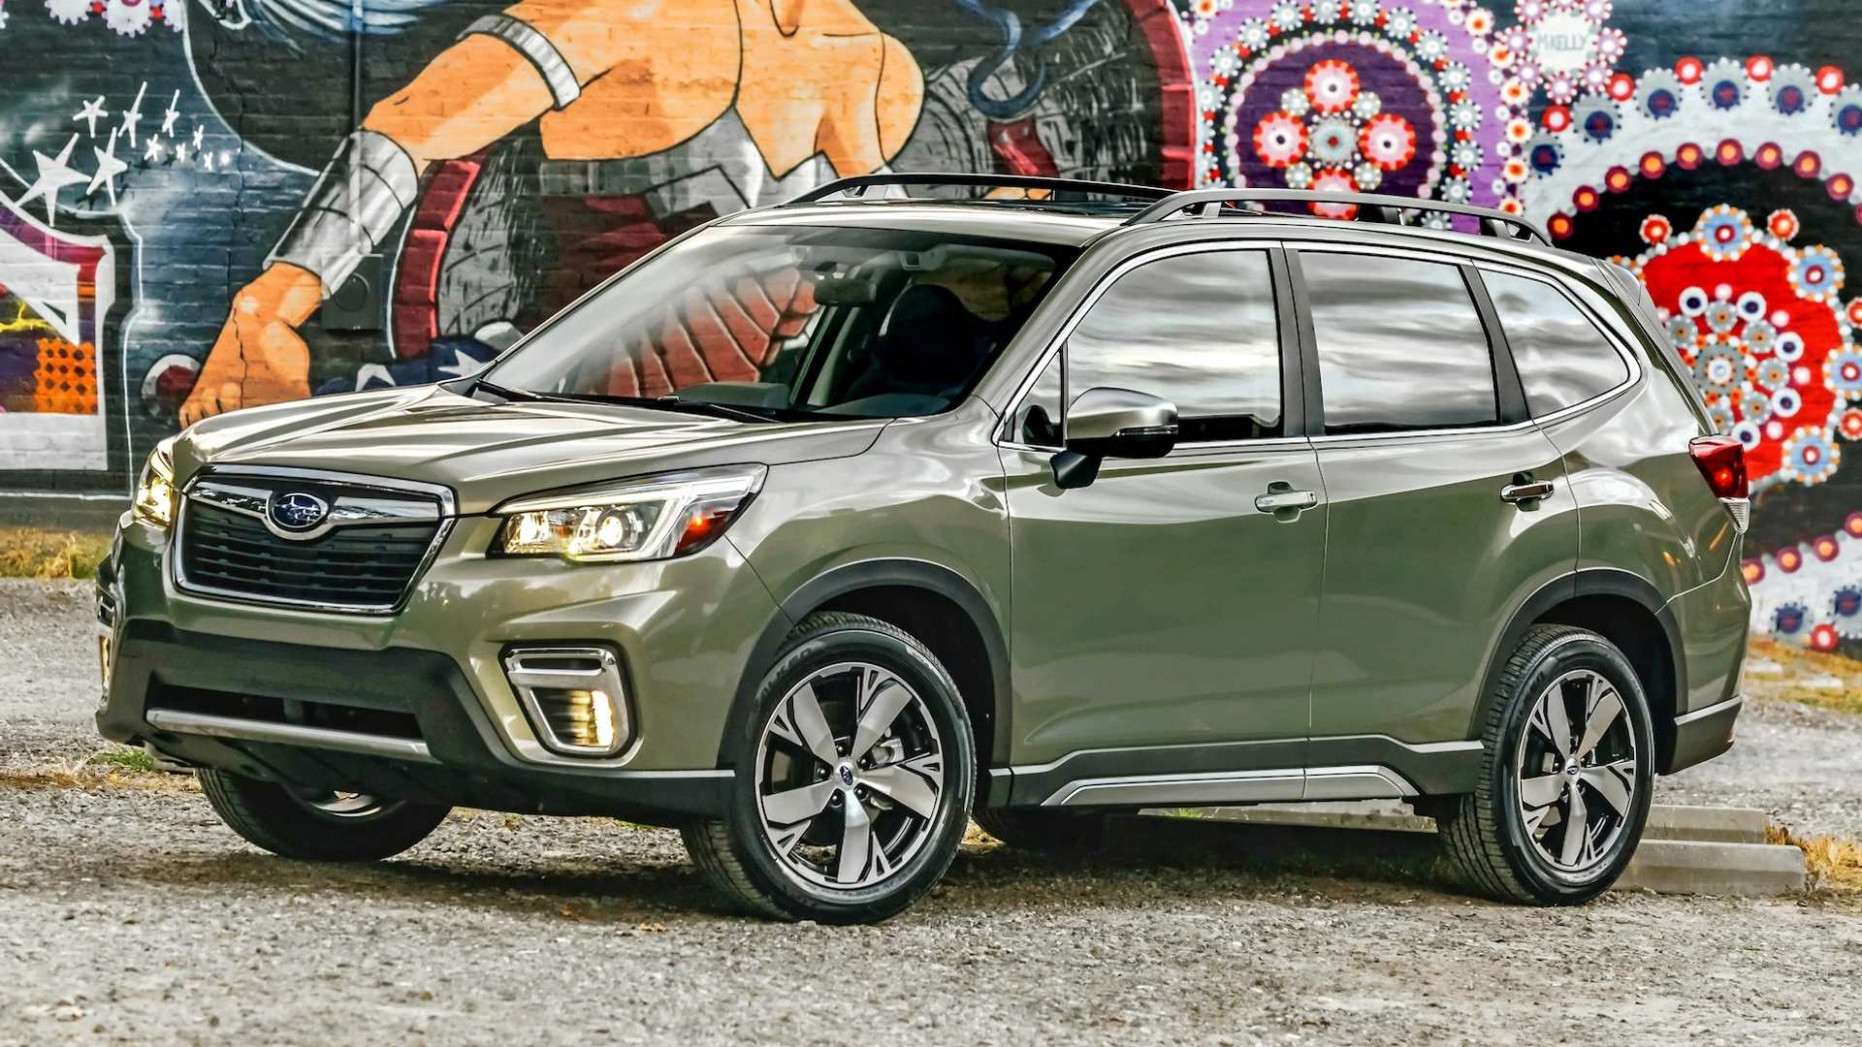 8 Subaru Forester Gets Price Bump, More Standard Safety Kit